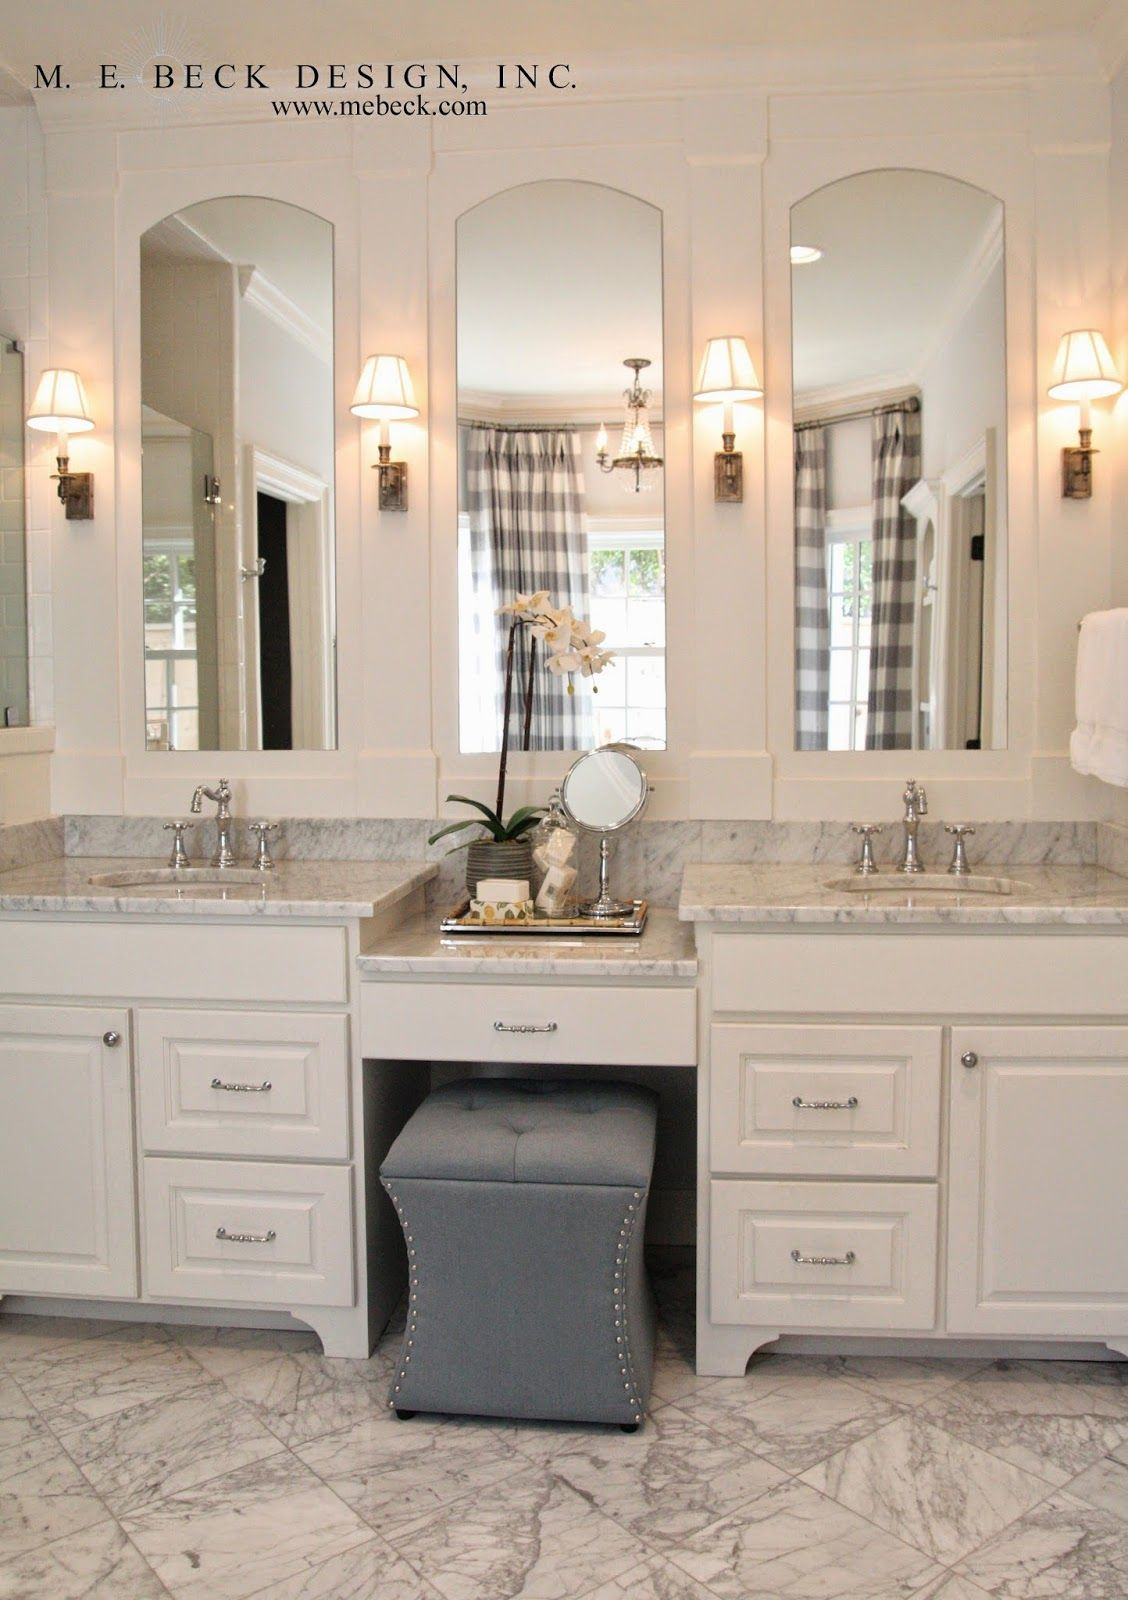 Live beautifully center hall colonial master bath vanity and sinks must have home stuff Master bedroom with bathroom vanity